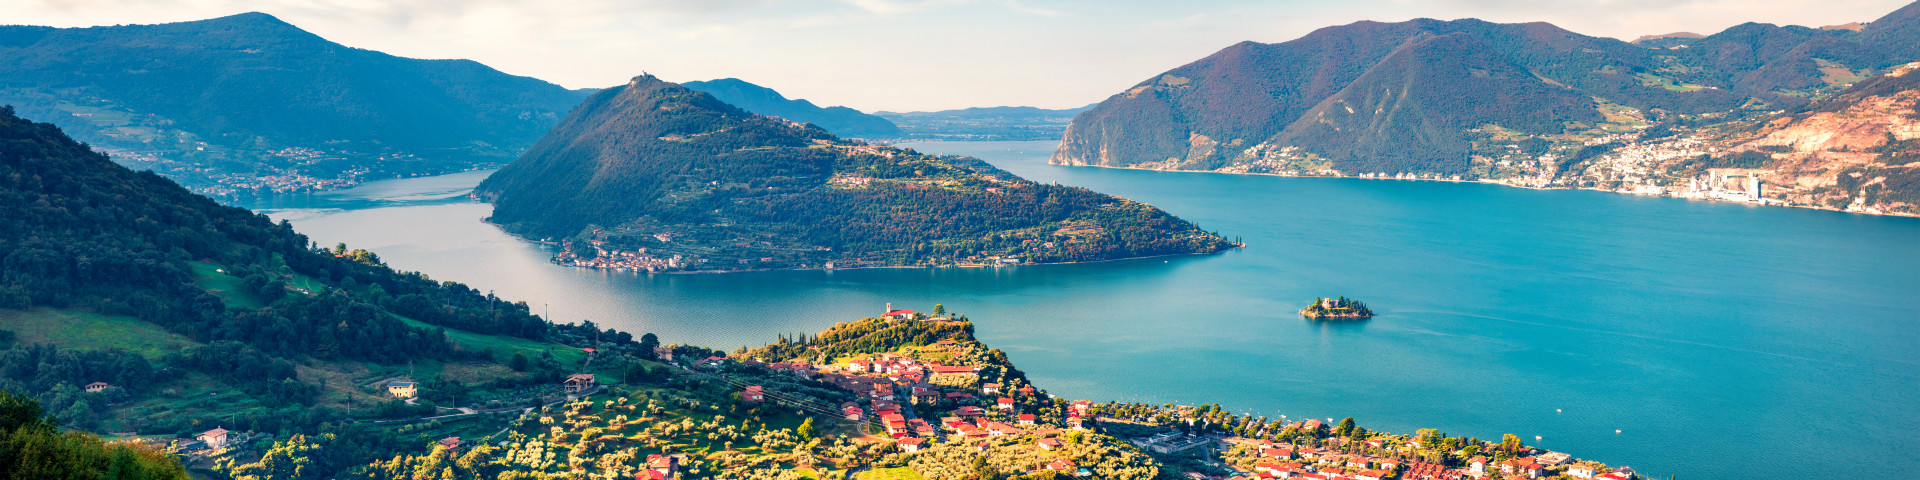 pohled na Lago d'Iseo a ostrov Monte Isola